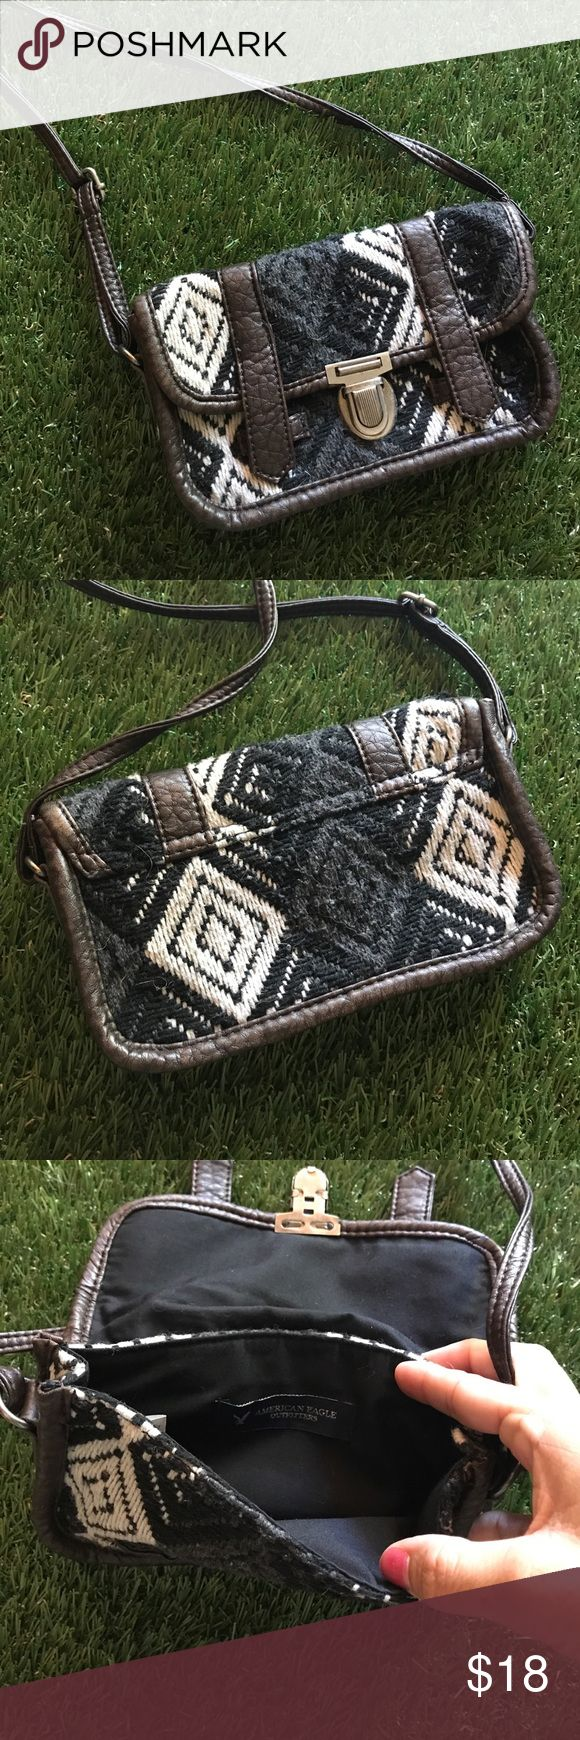 """Fiesta cross body purse Cute cross body purse , measures 7.5"""" x 5"""" . Strap is adjustable fits an iPhone plus and some money - perfect for concerts festivals etc American Eagle Outfitters Bags Crossbody Bags"""